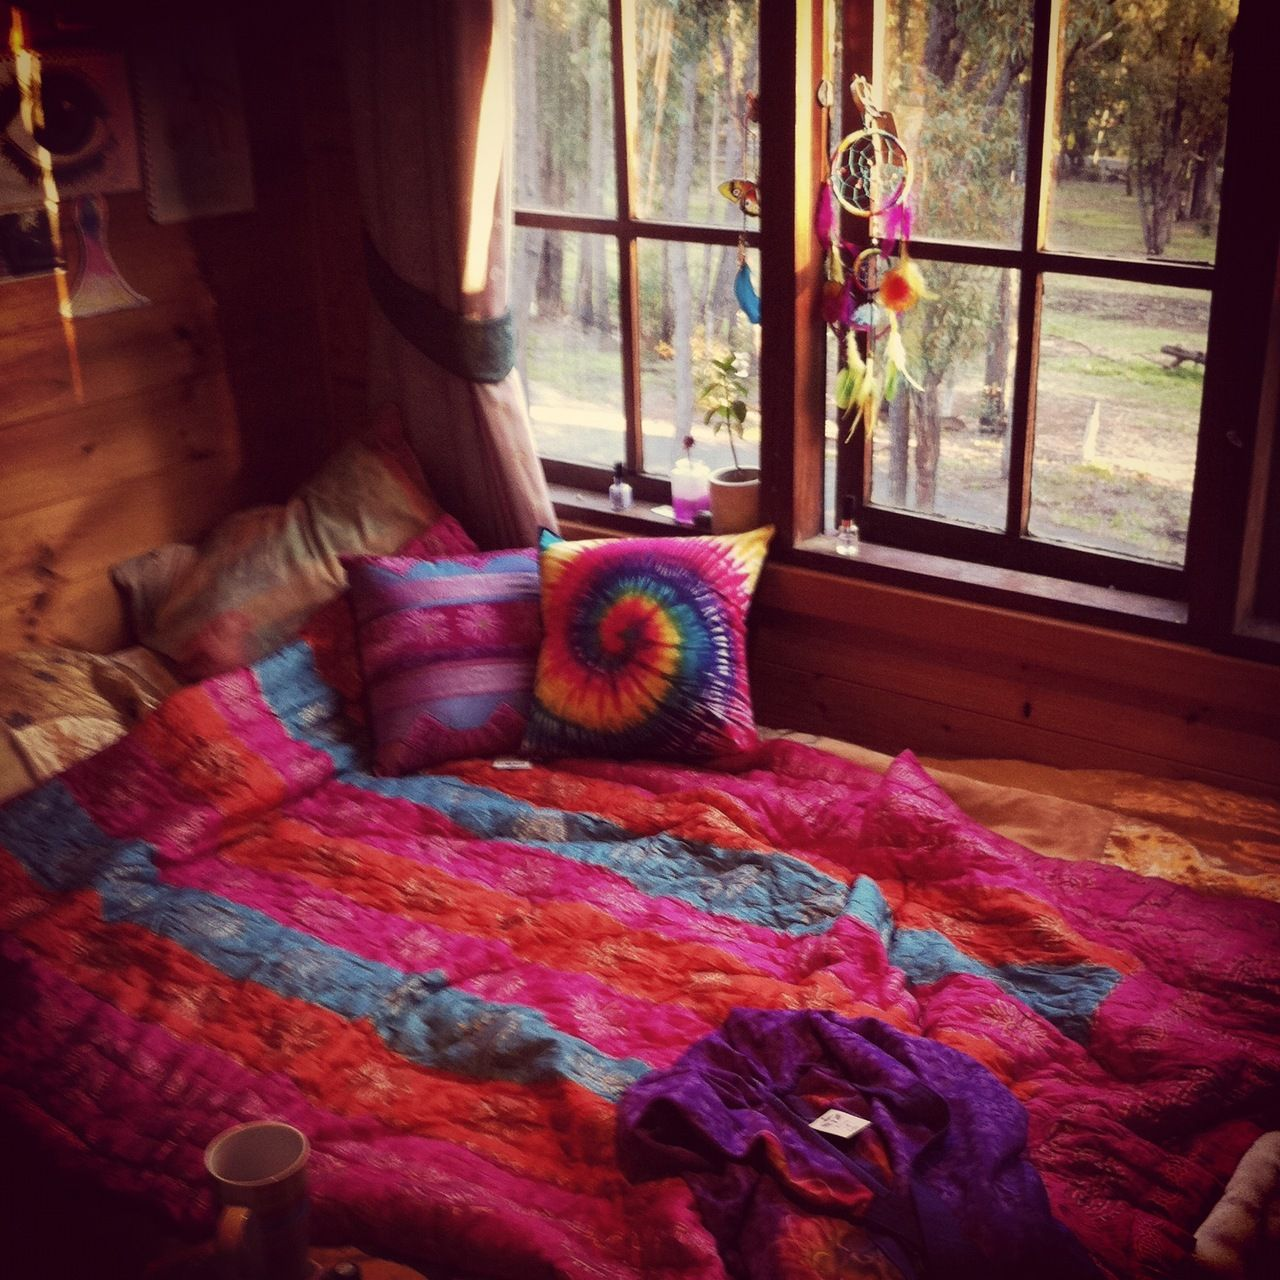 travel-as-a-happy-hippie: ~let's chill in my hippie van~ | rest